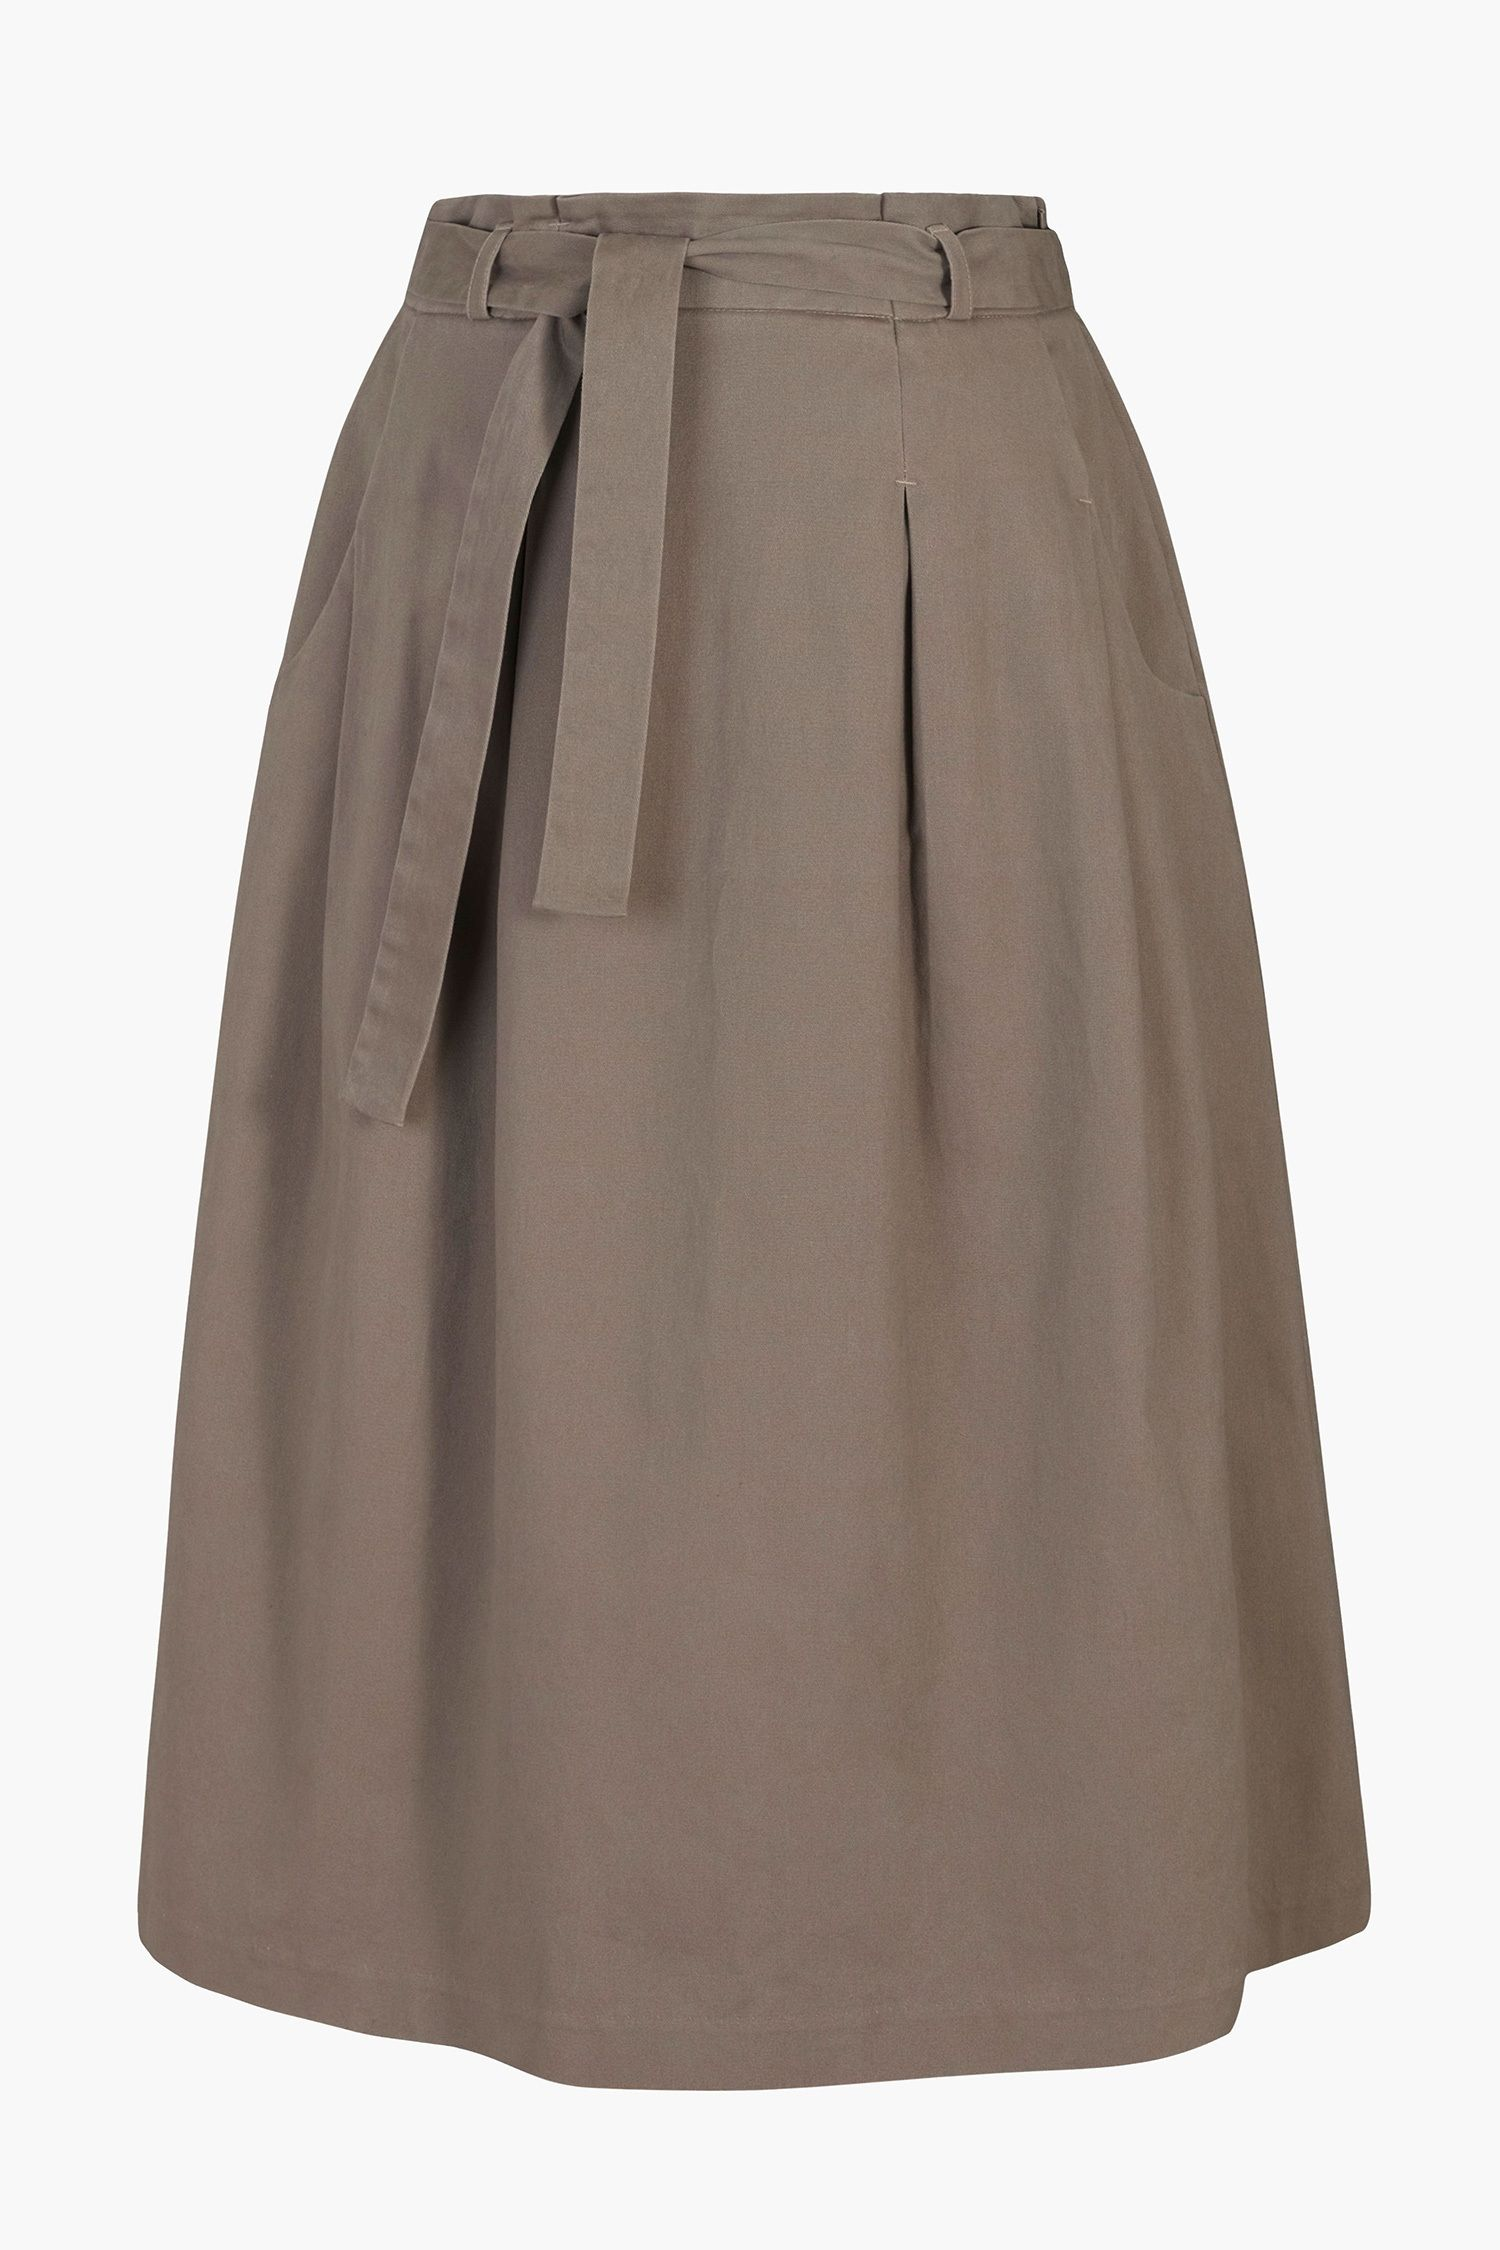 19a4279de Midi Seasalt skirt, in soft cotton chino. With a paperbag waist and ...